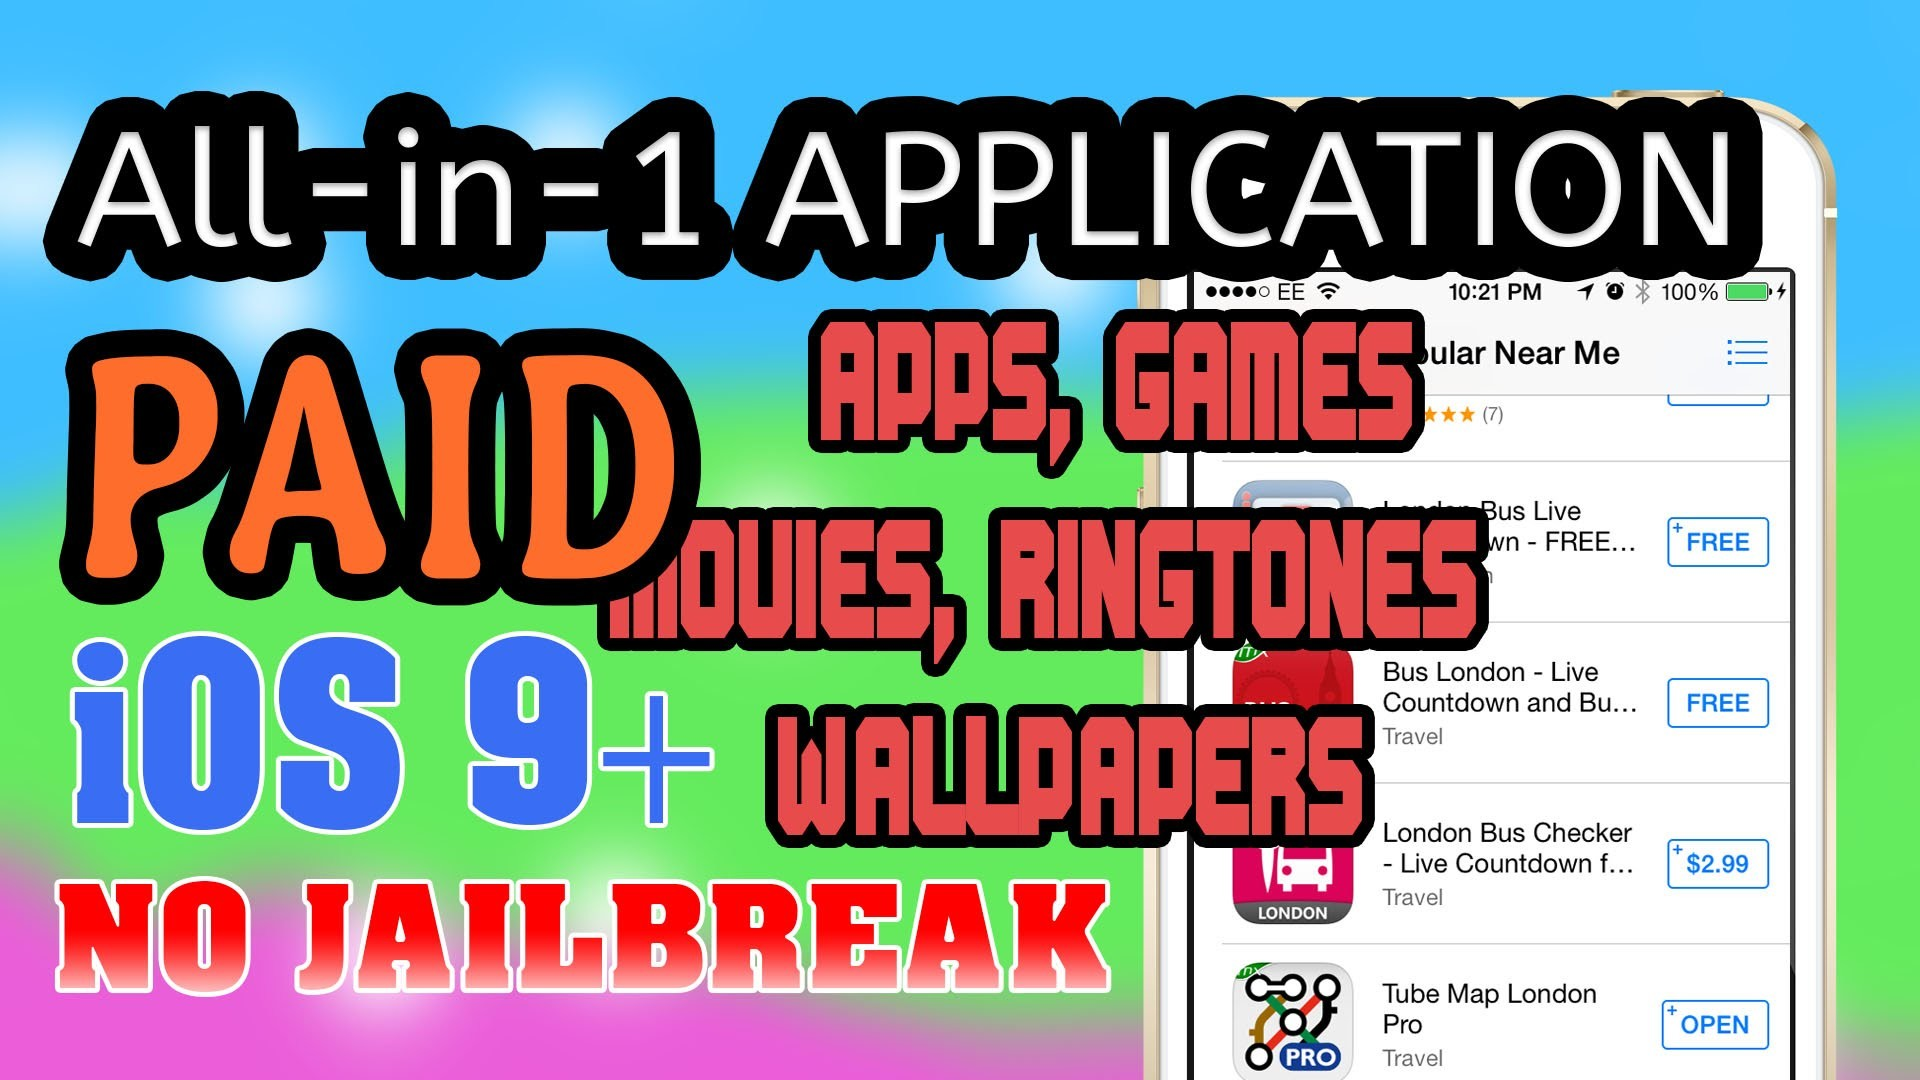 All-in-1 App: Paid Apps, Games, Ringtone, Wallpapers (NO JAILBREAK) iPhone  iPad iPod Touch iOS 9